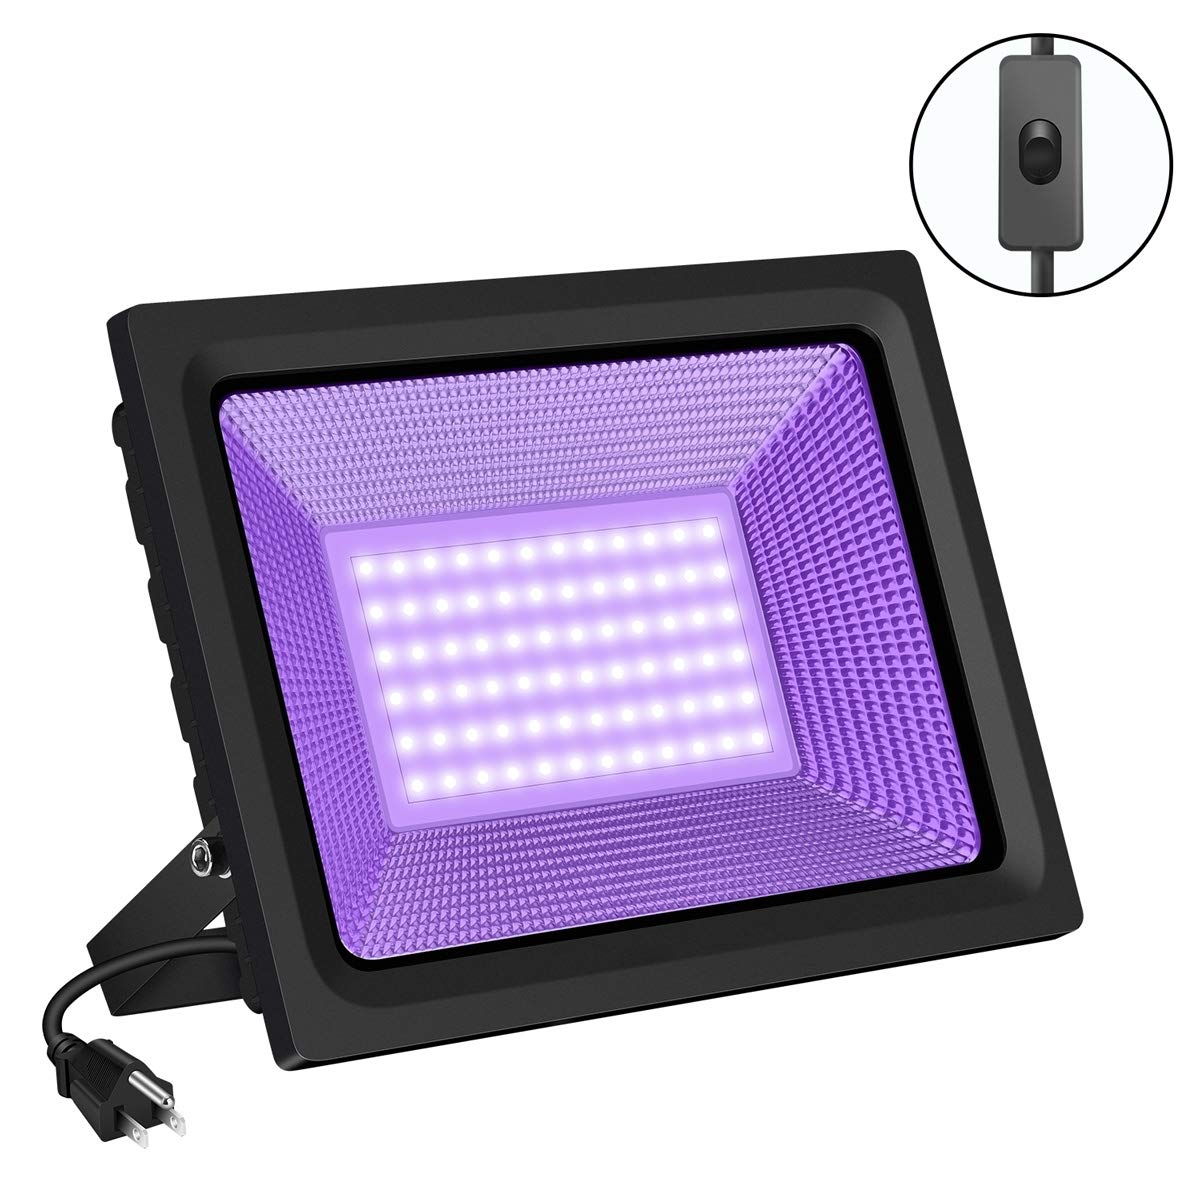 SAYHON UV Black Light with Switch 80W LED Ultra Violet LED Blacklight Waterproof Stage Light Flood Light for Parties Club, Glow in the Dark, Body Paint Neon Party Supply Decorations, Aquarium, Curing